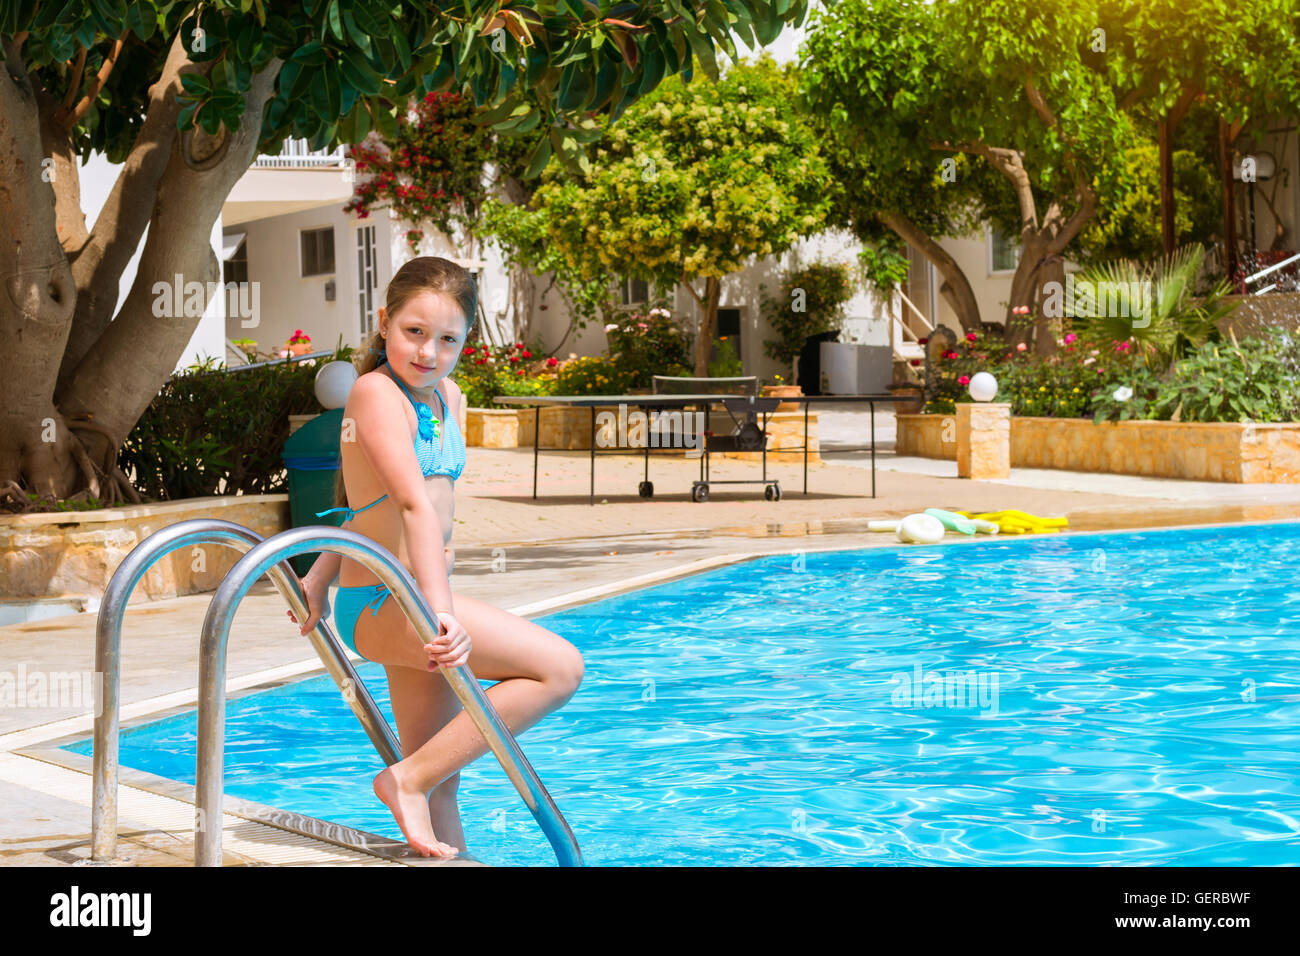 stunning Cute Little Teen Girls Part - 19: Cute little teenage girl in swimsuit standing at pool in middle of day.  Relax and